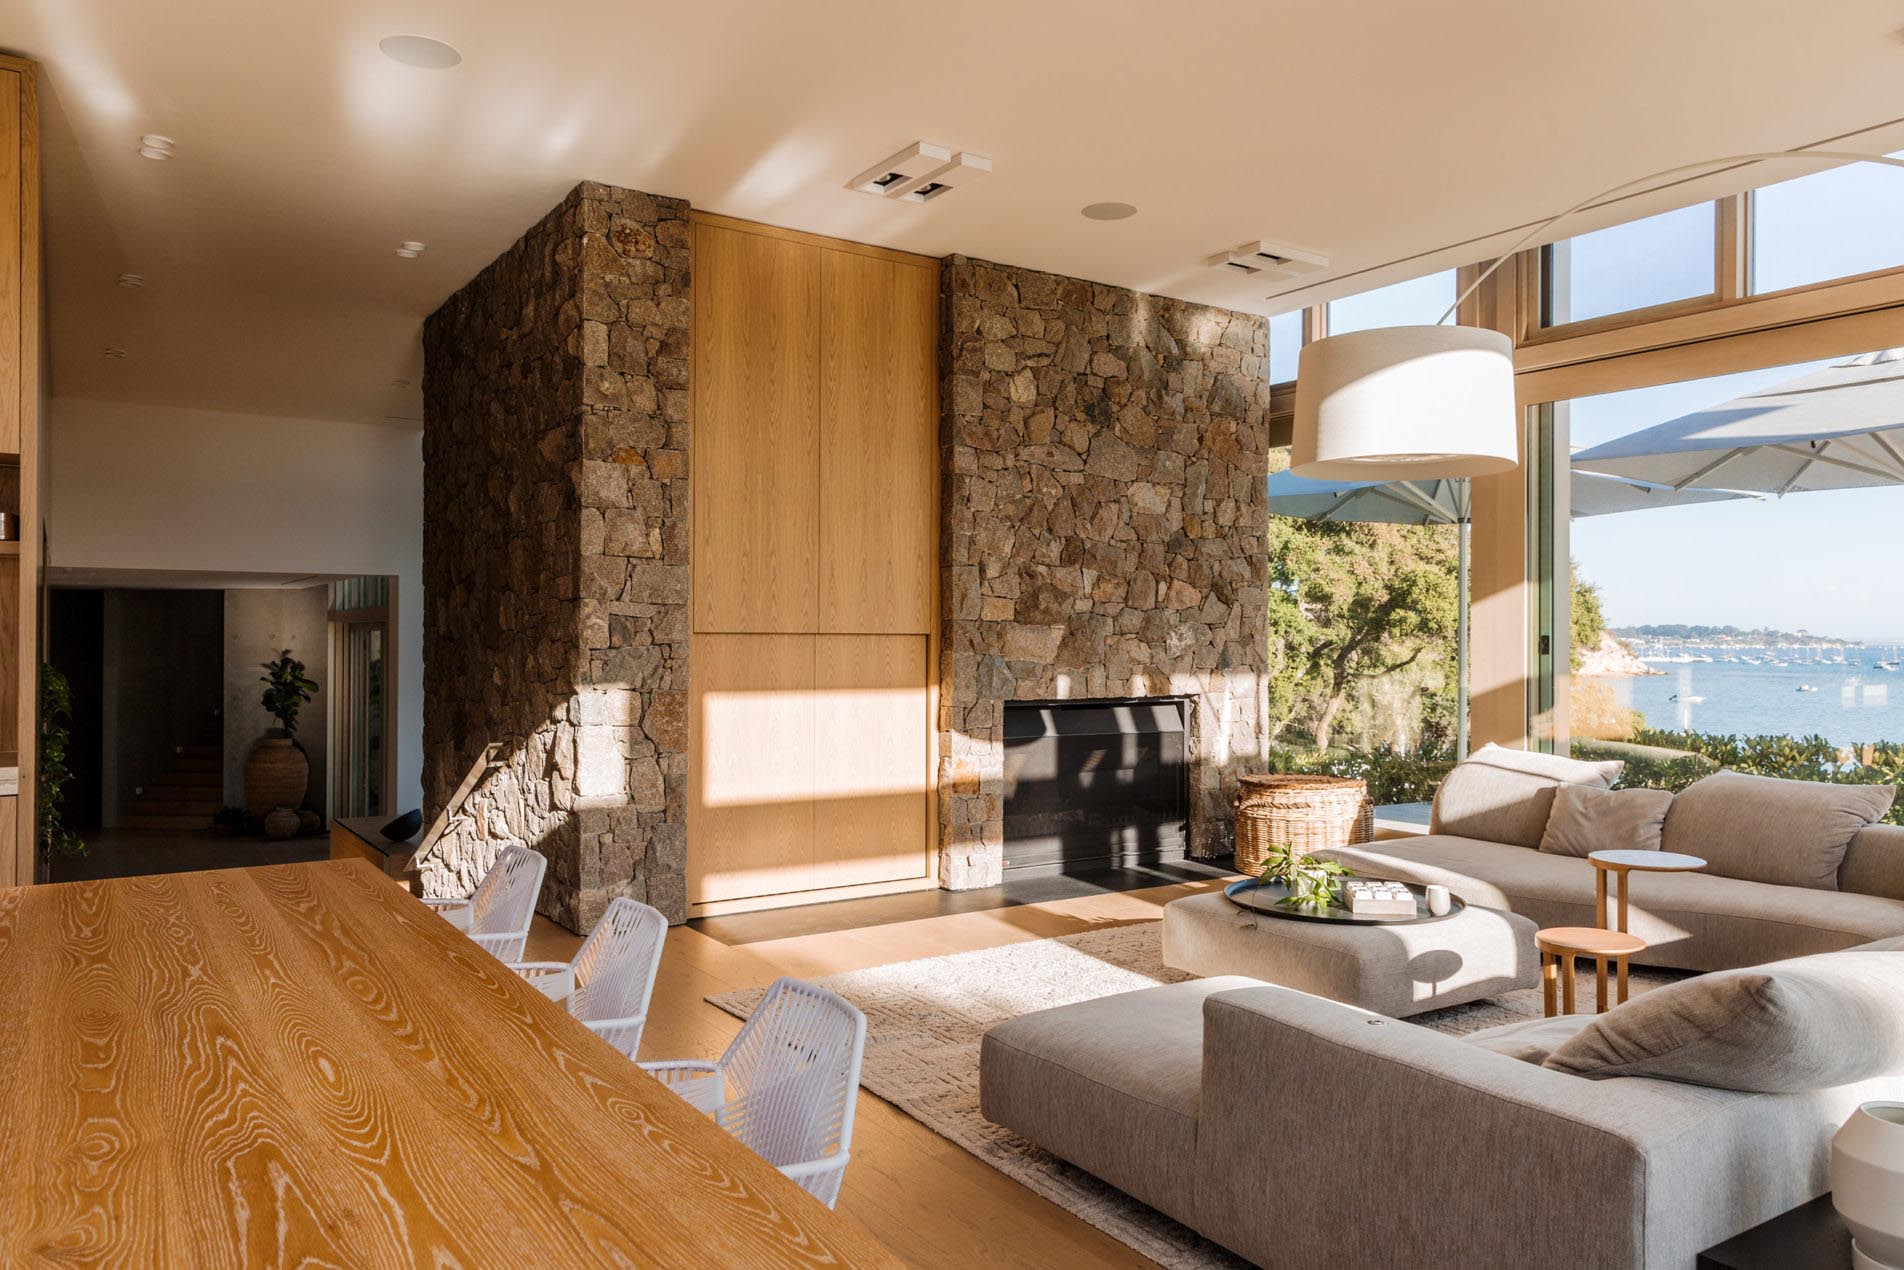 A modern home interior with a stone wall accent.